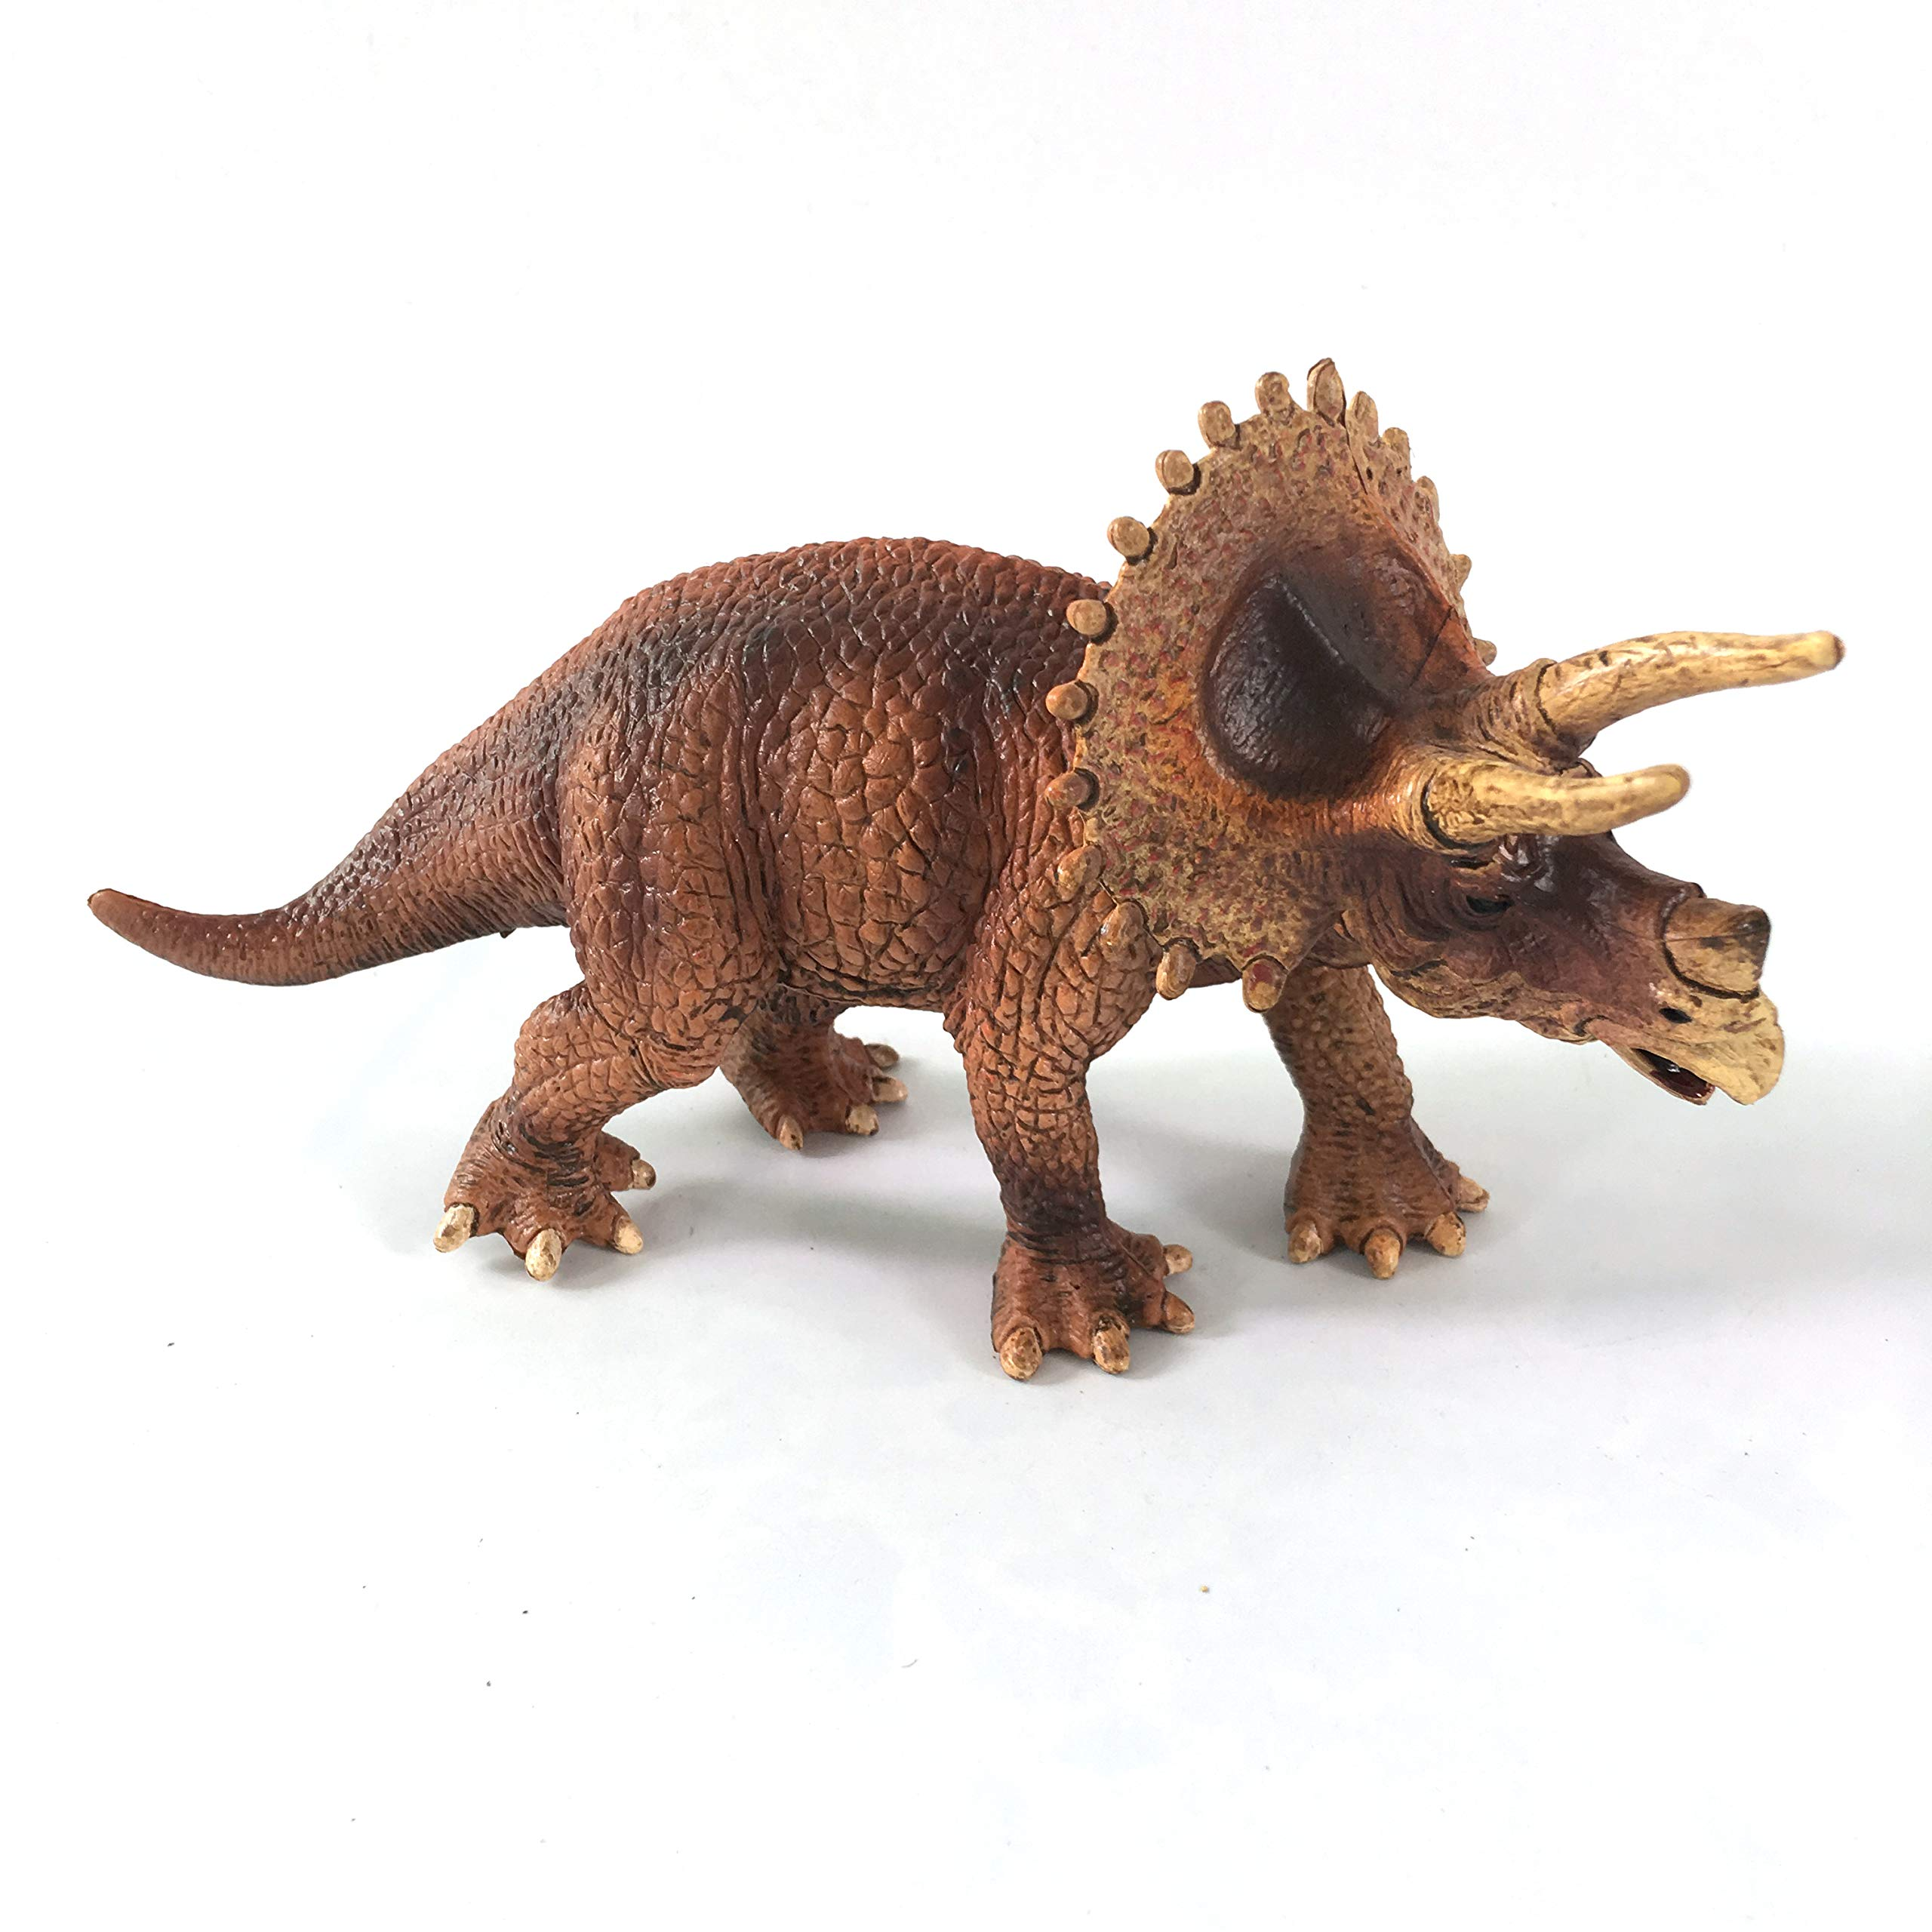 ZXLZKQ Jurassic Dinosaur Educational Dinosaur Toys for Toddlers and Older Kids Boys and Girls - M5002